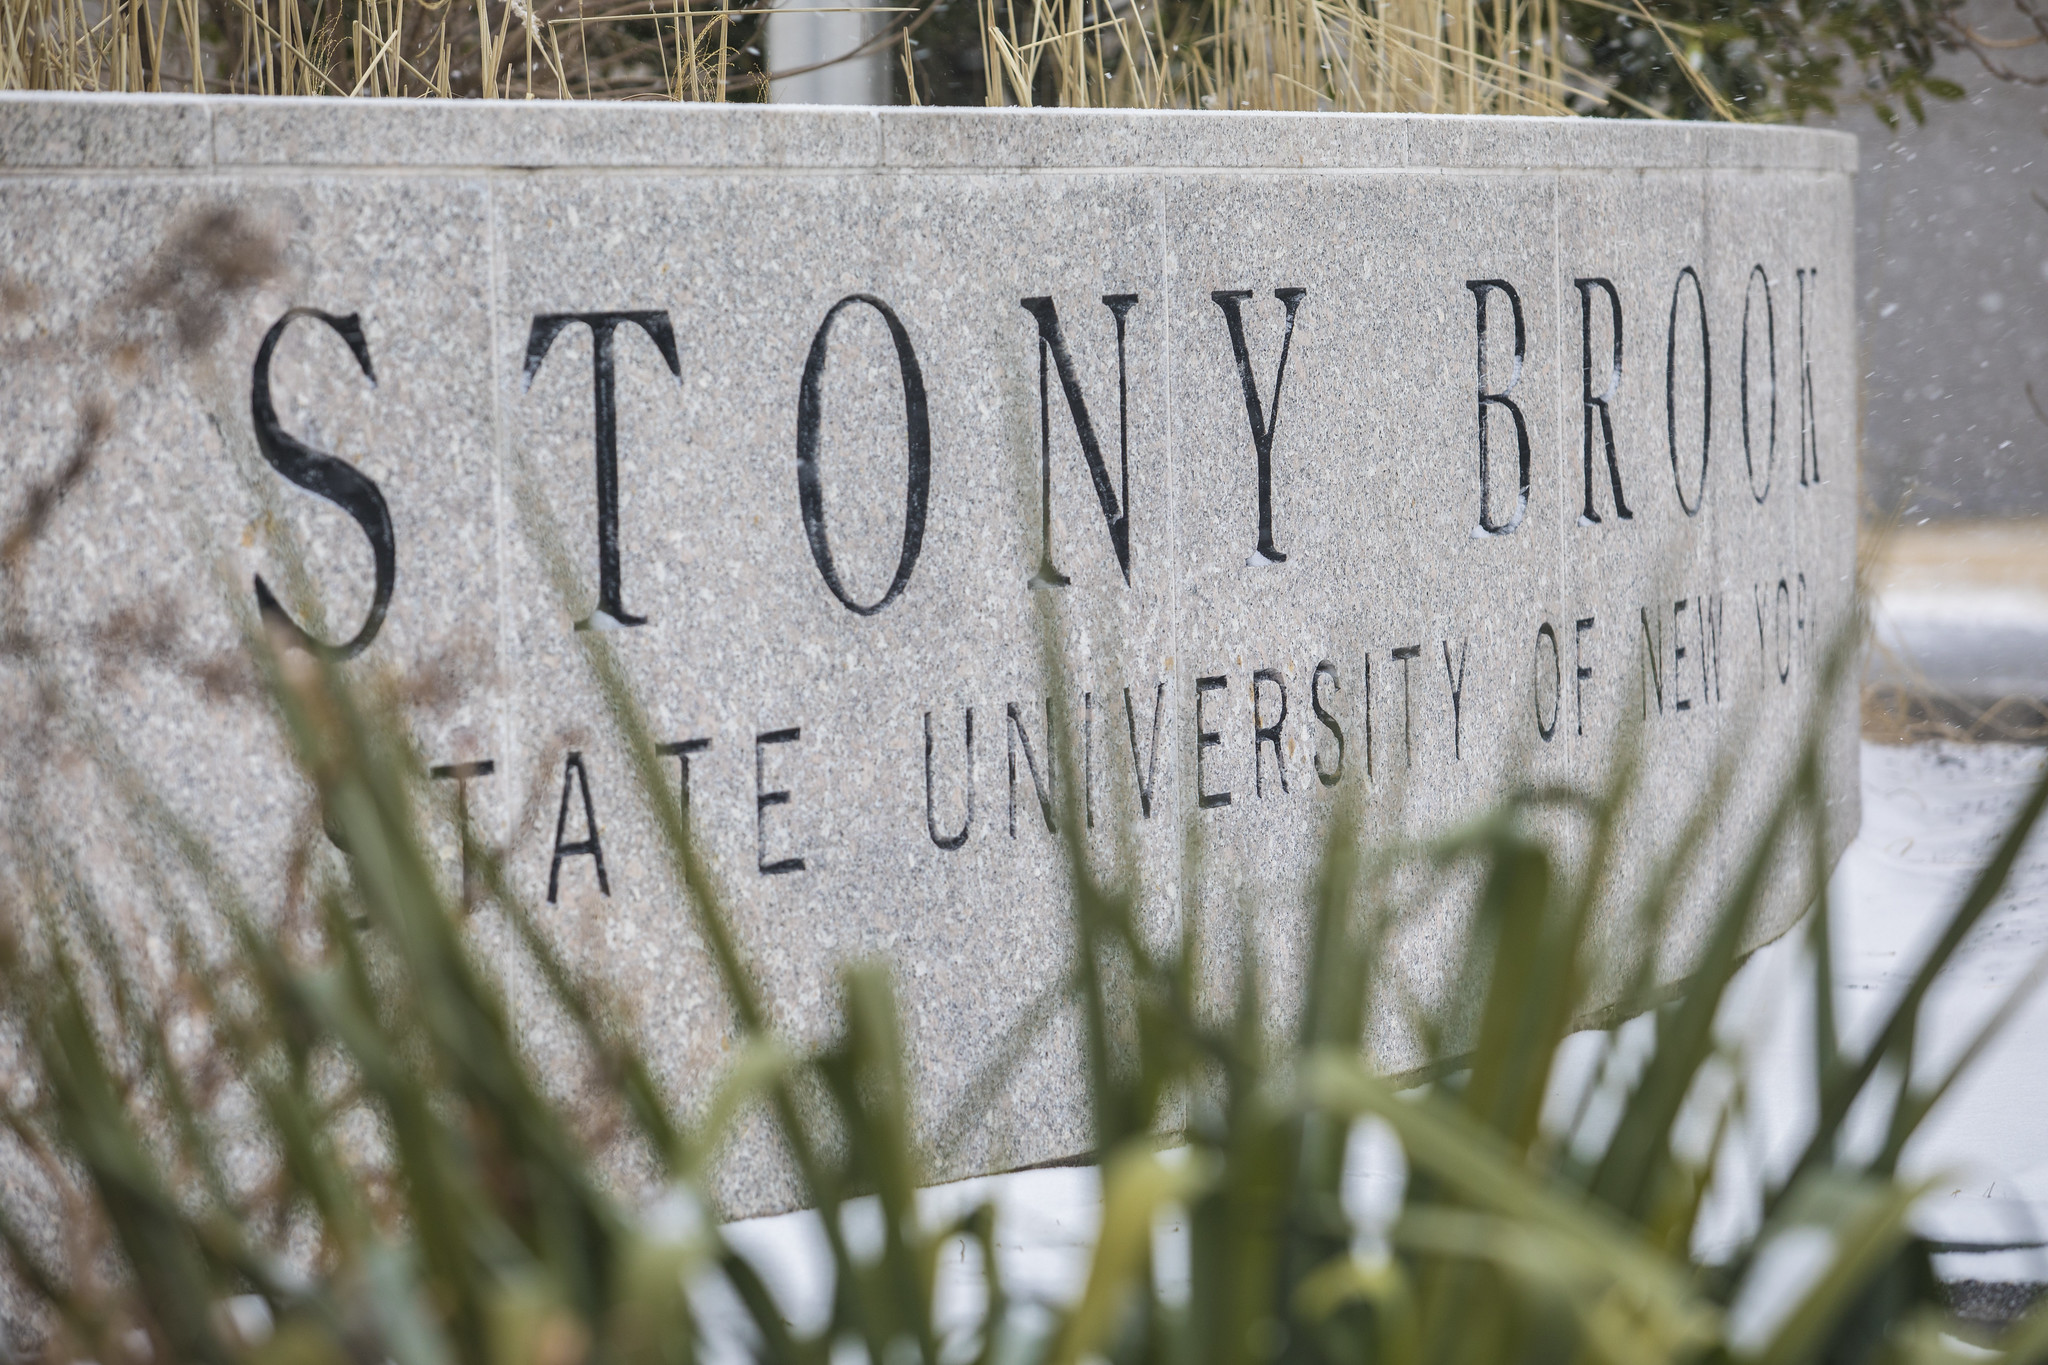 Stony Brook University Sign